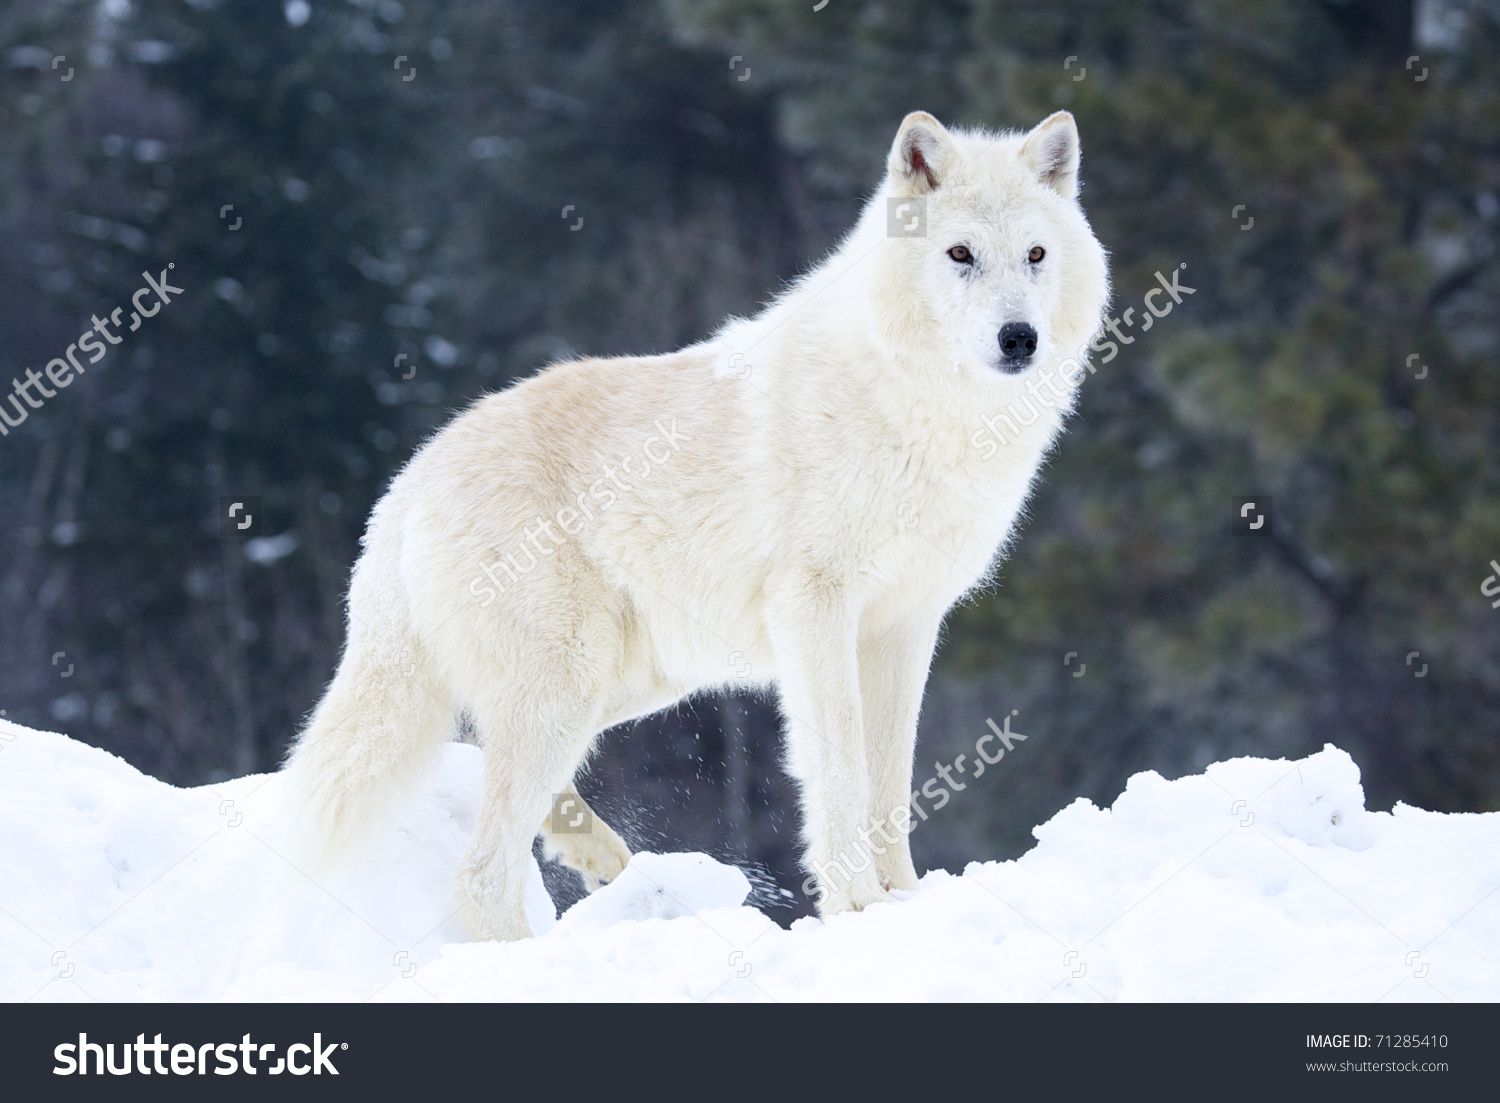 Arctic Wolf clipart #8, Download drawings